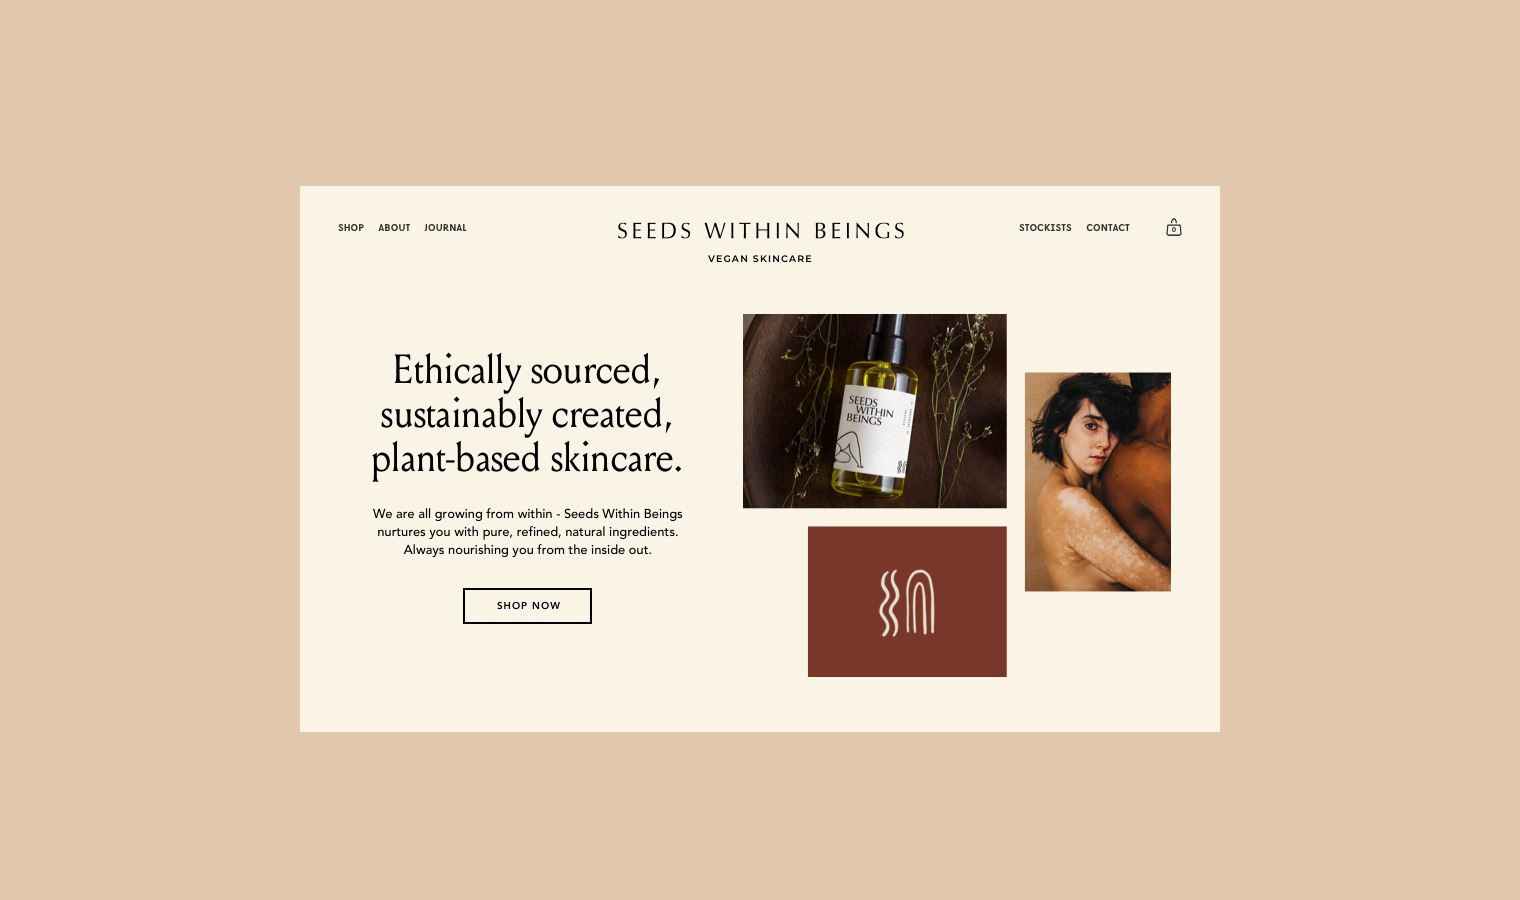 vegan-skincare-homepage-ethical-design-agency-sustainable-brands-graphic-designer-sydney-byron-bay-bondi-melbourne-branding.jpg